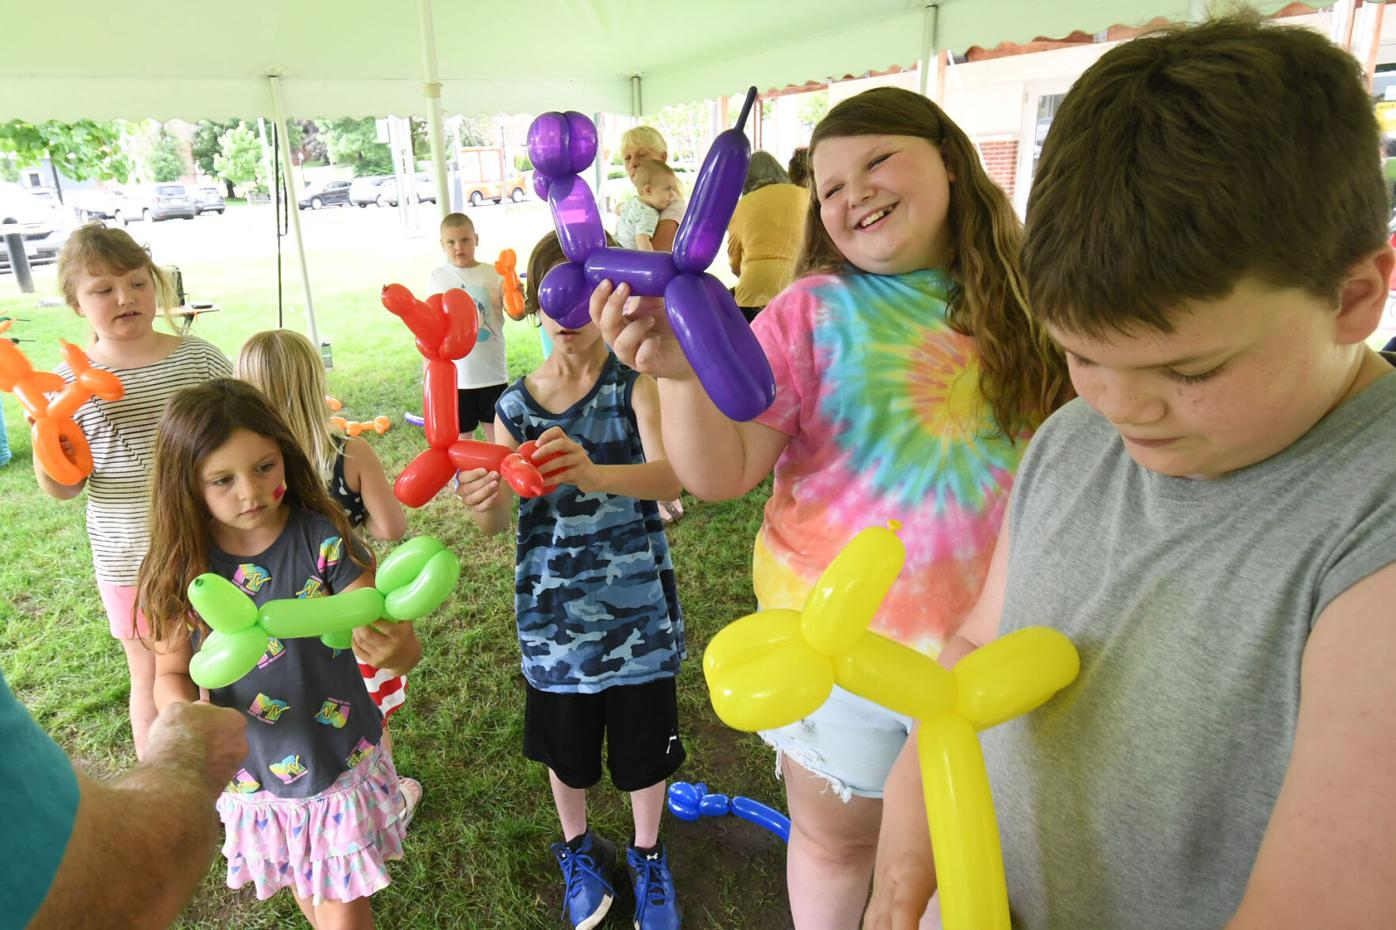 Children hold up their balloon animals which are shaped like a dog